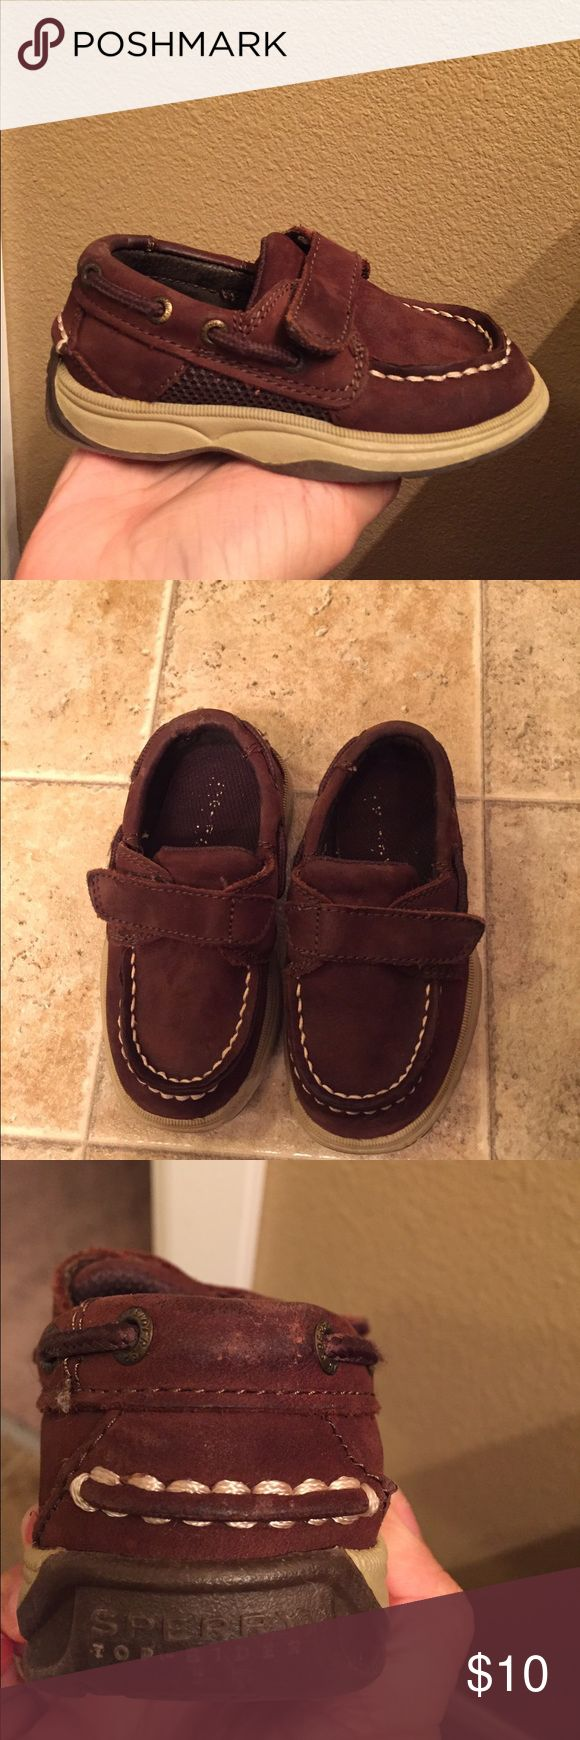 toddler Sperrys These leather sperrys are used but still in great condition. My son outgrew them but they are easy on and off shoes ! And comfy for little feet. Sperry Top-Sider Shoes Dress Shoes